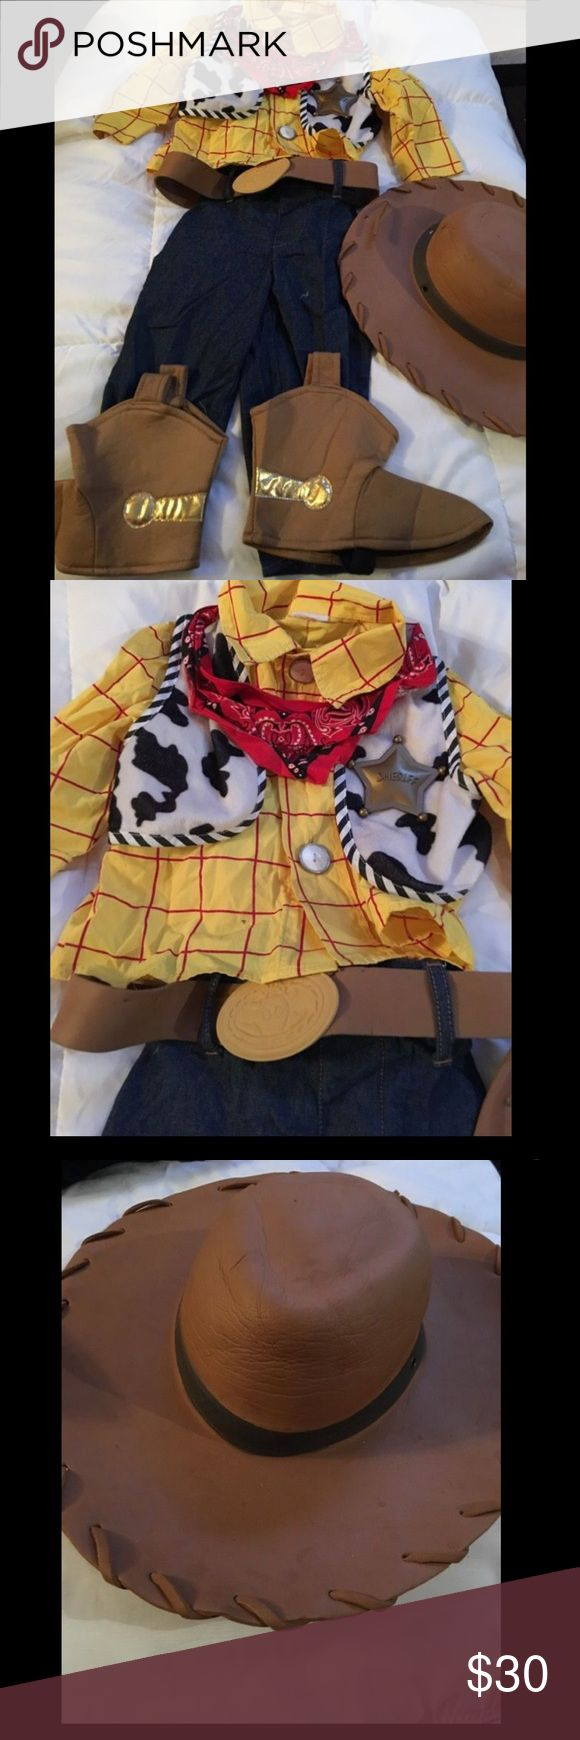 Disney Toy Story WOODY Costume size XXS 2/3 Toddler's Halloween costume from the Disney Store. From the movie Toy Story, here is Andy's toy: Woody. Size XXS (2/3). Includes shirt, vest, sheriff badge, pants, bandana, belt, and a pair of boots (shoe covers). Belt and hat shows some wear, the rest is excellent condition. Disney Costumes Halloween